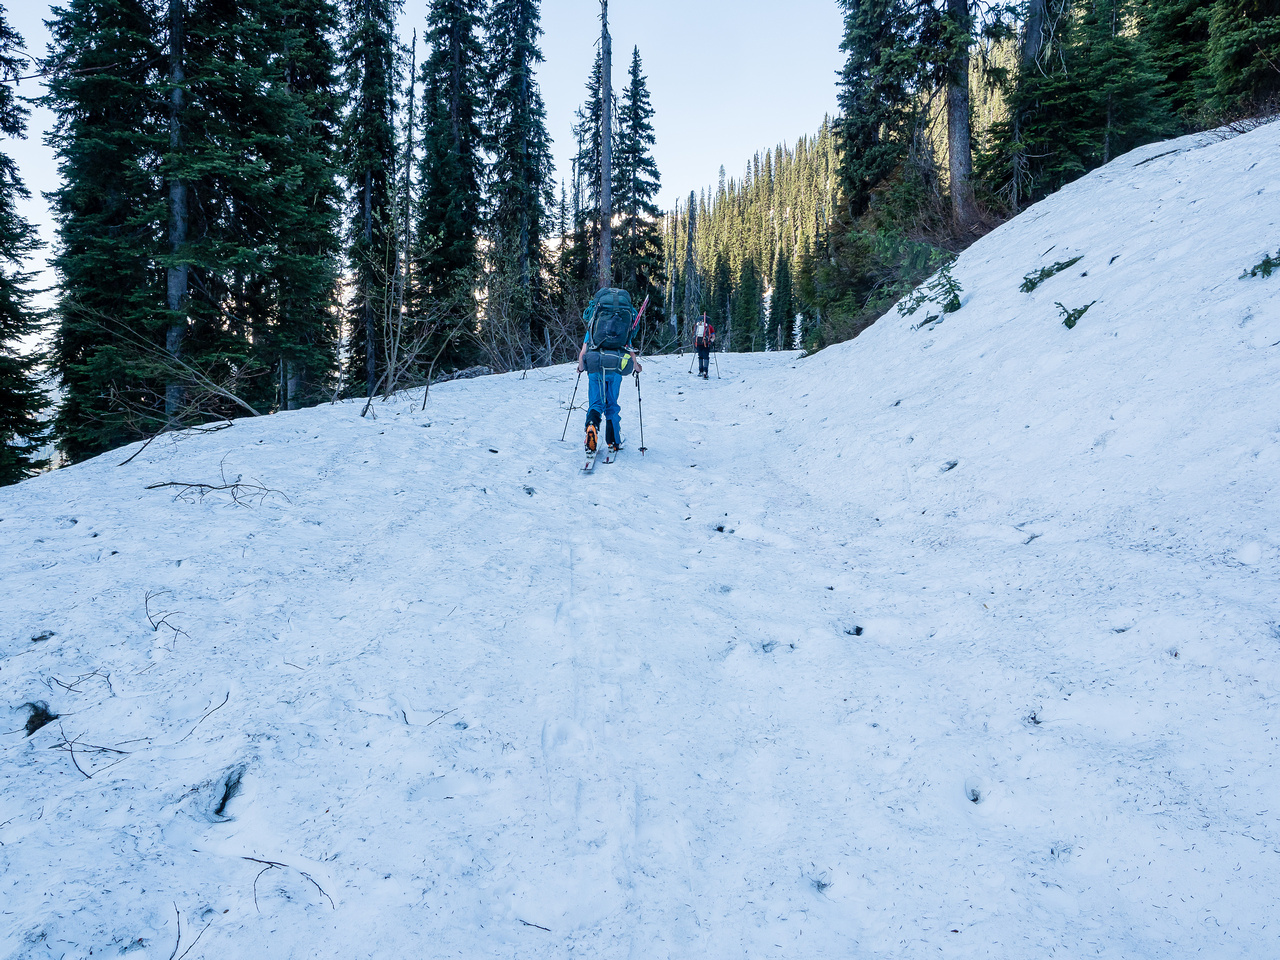 We reach snow much earlier and lower down than on our last trip.